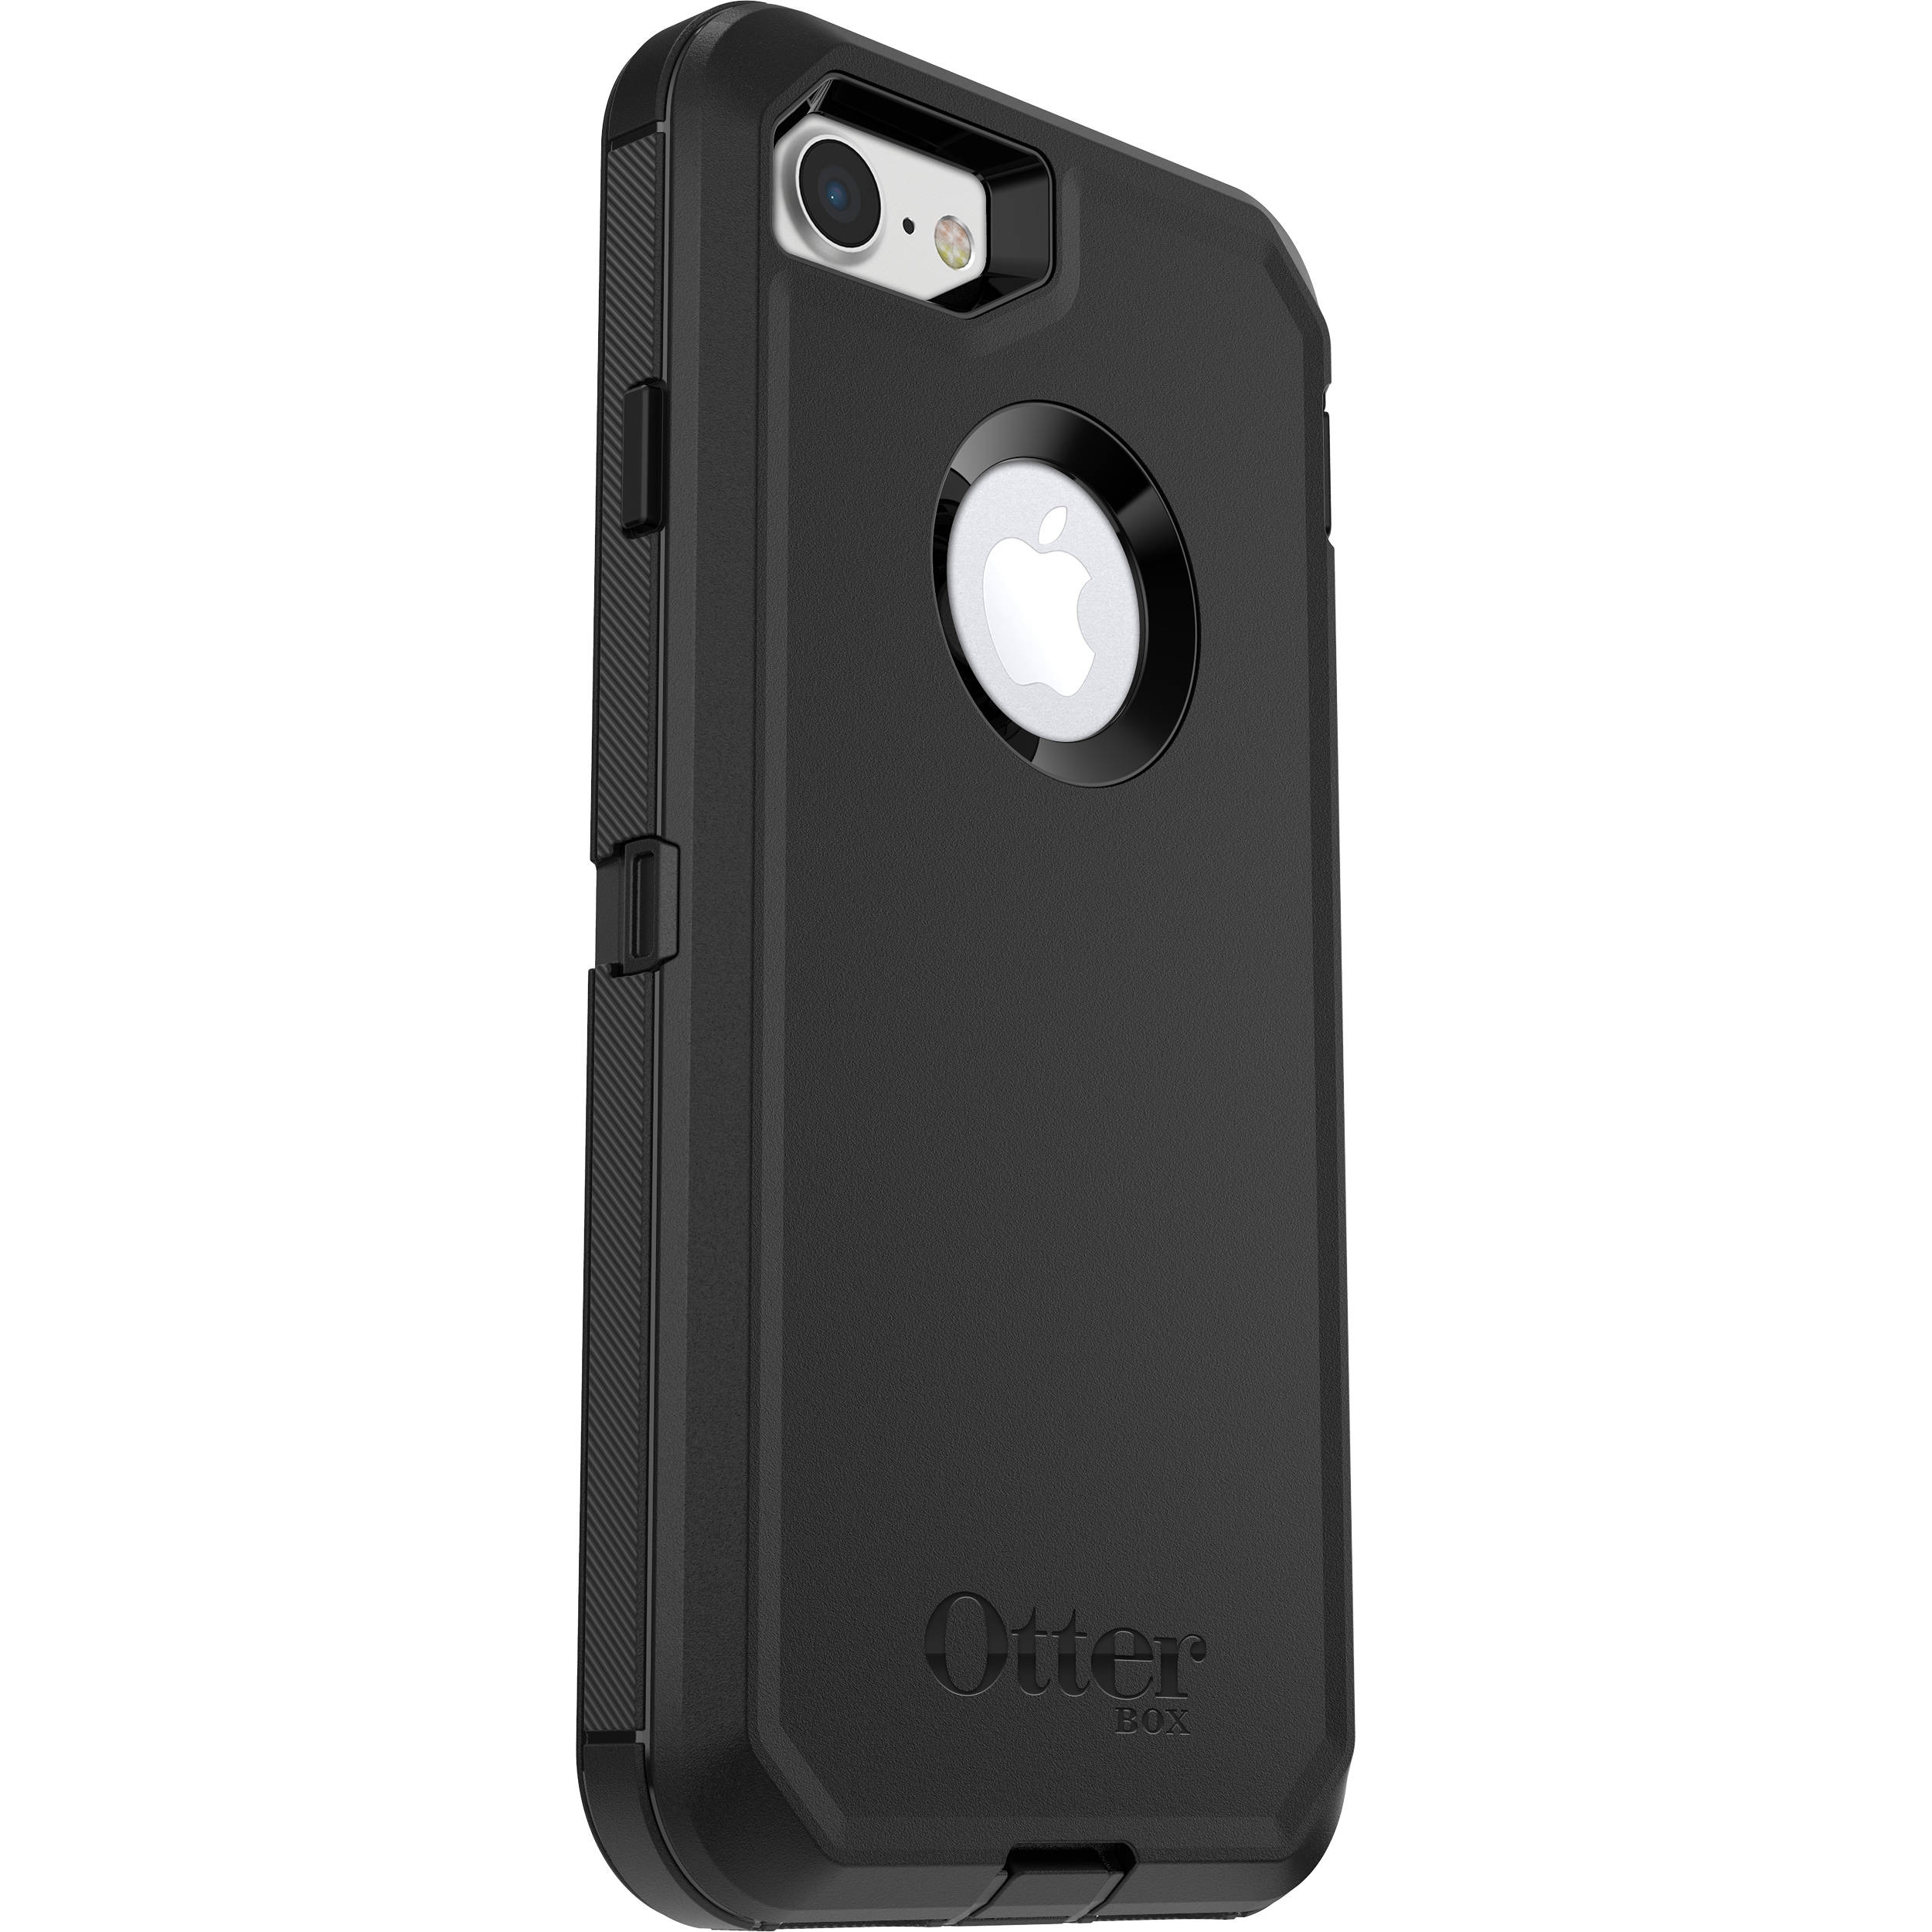 Otterbox Defender Series Case For Iphone 7 8 Black 77 56603 New Ipad Ipod Or Not Included